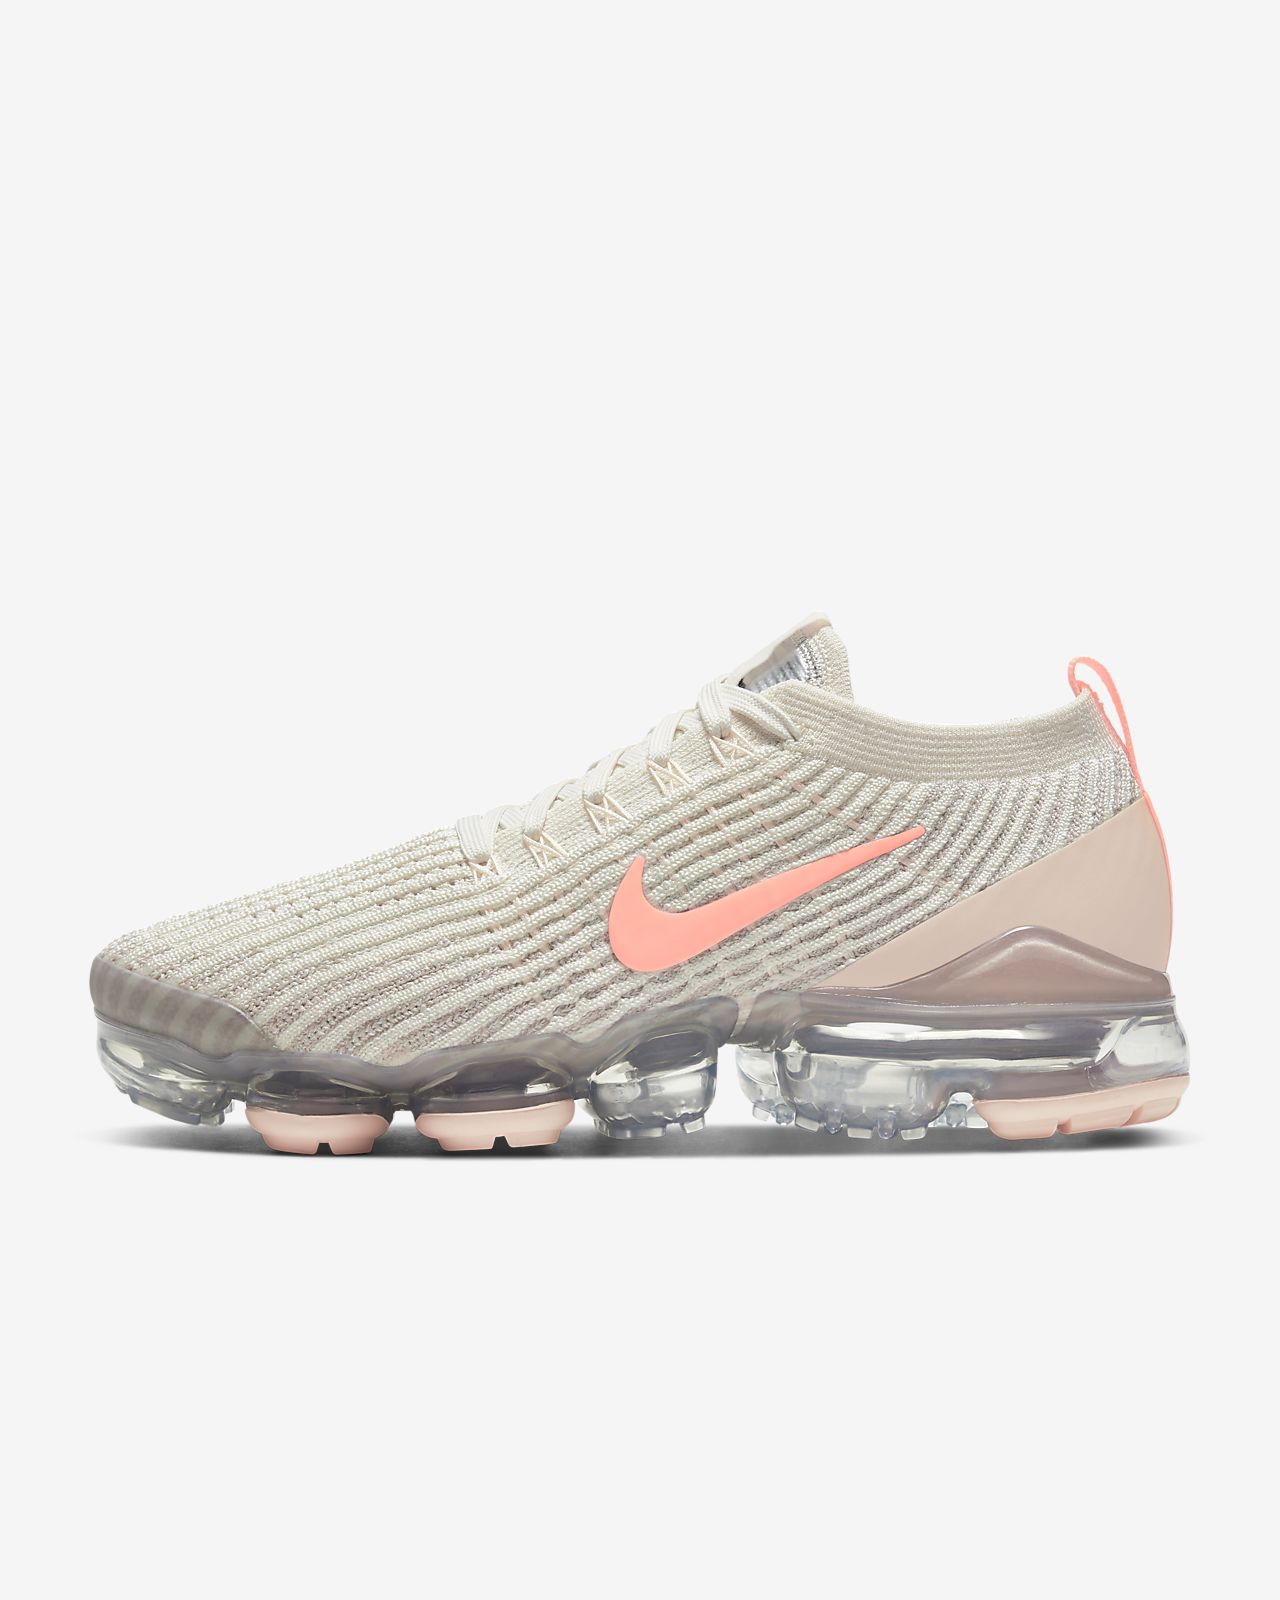 Chaussure Nike Air VaporMax Flyknit 3 pour Femme